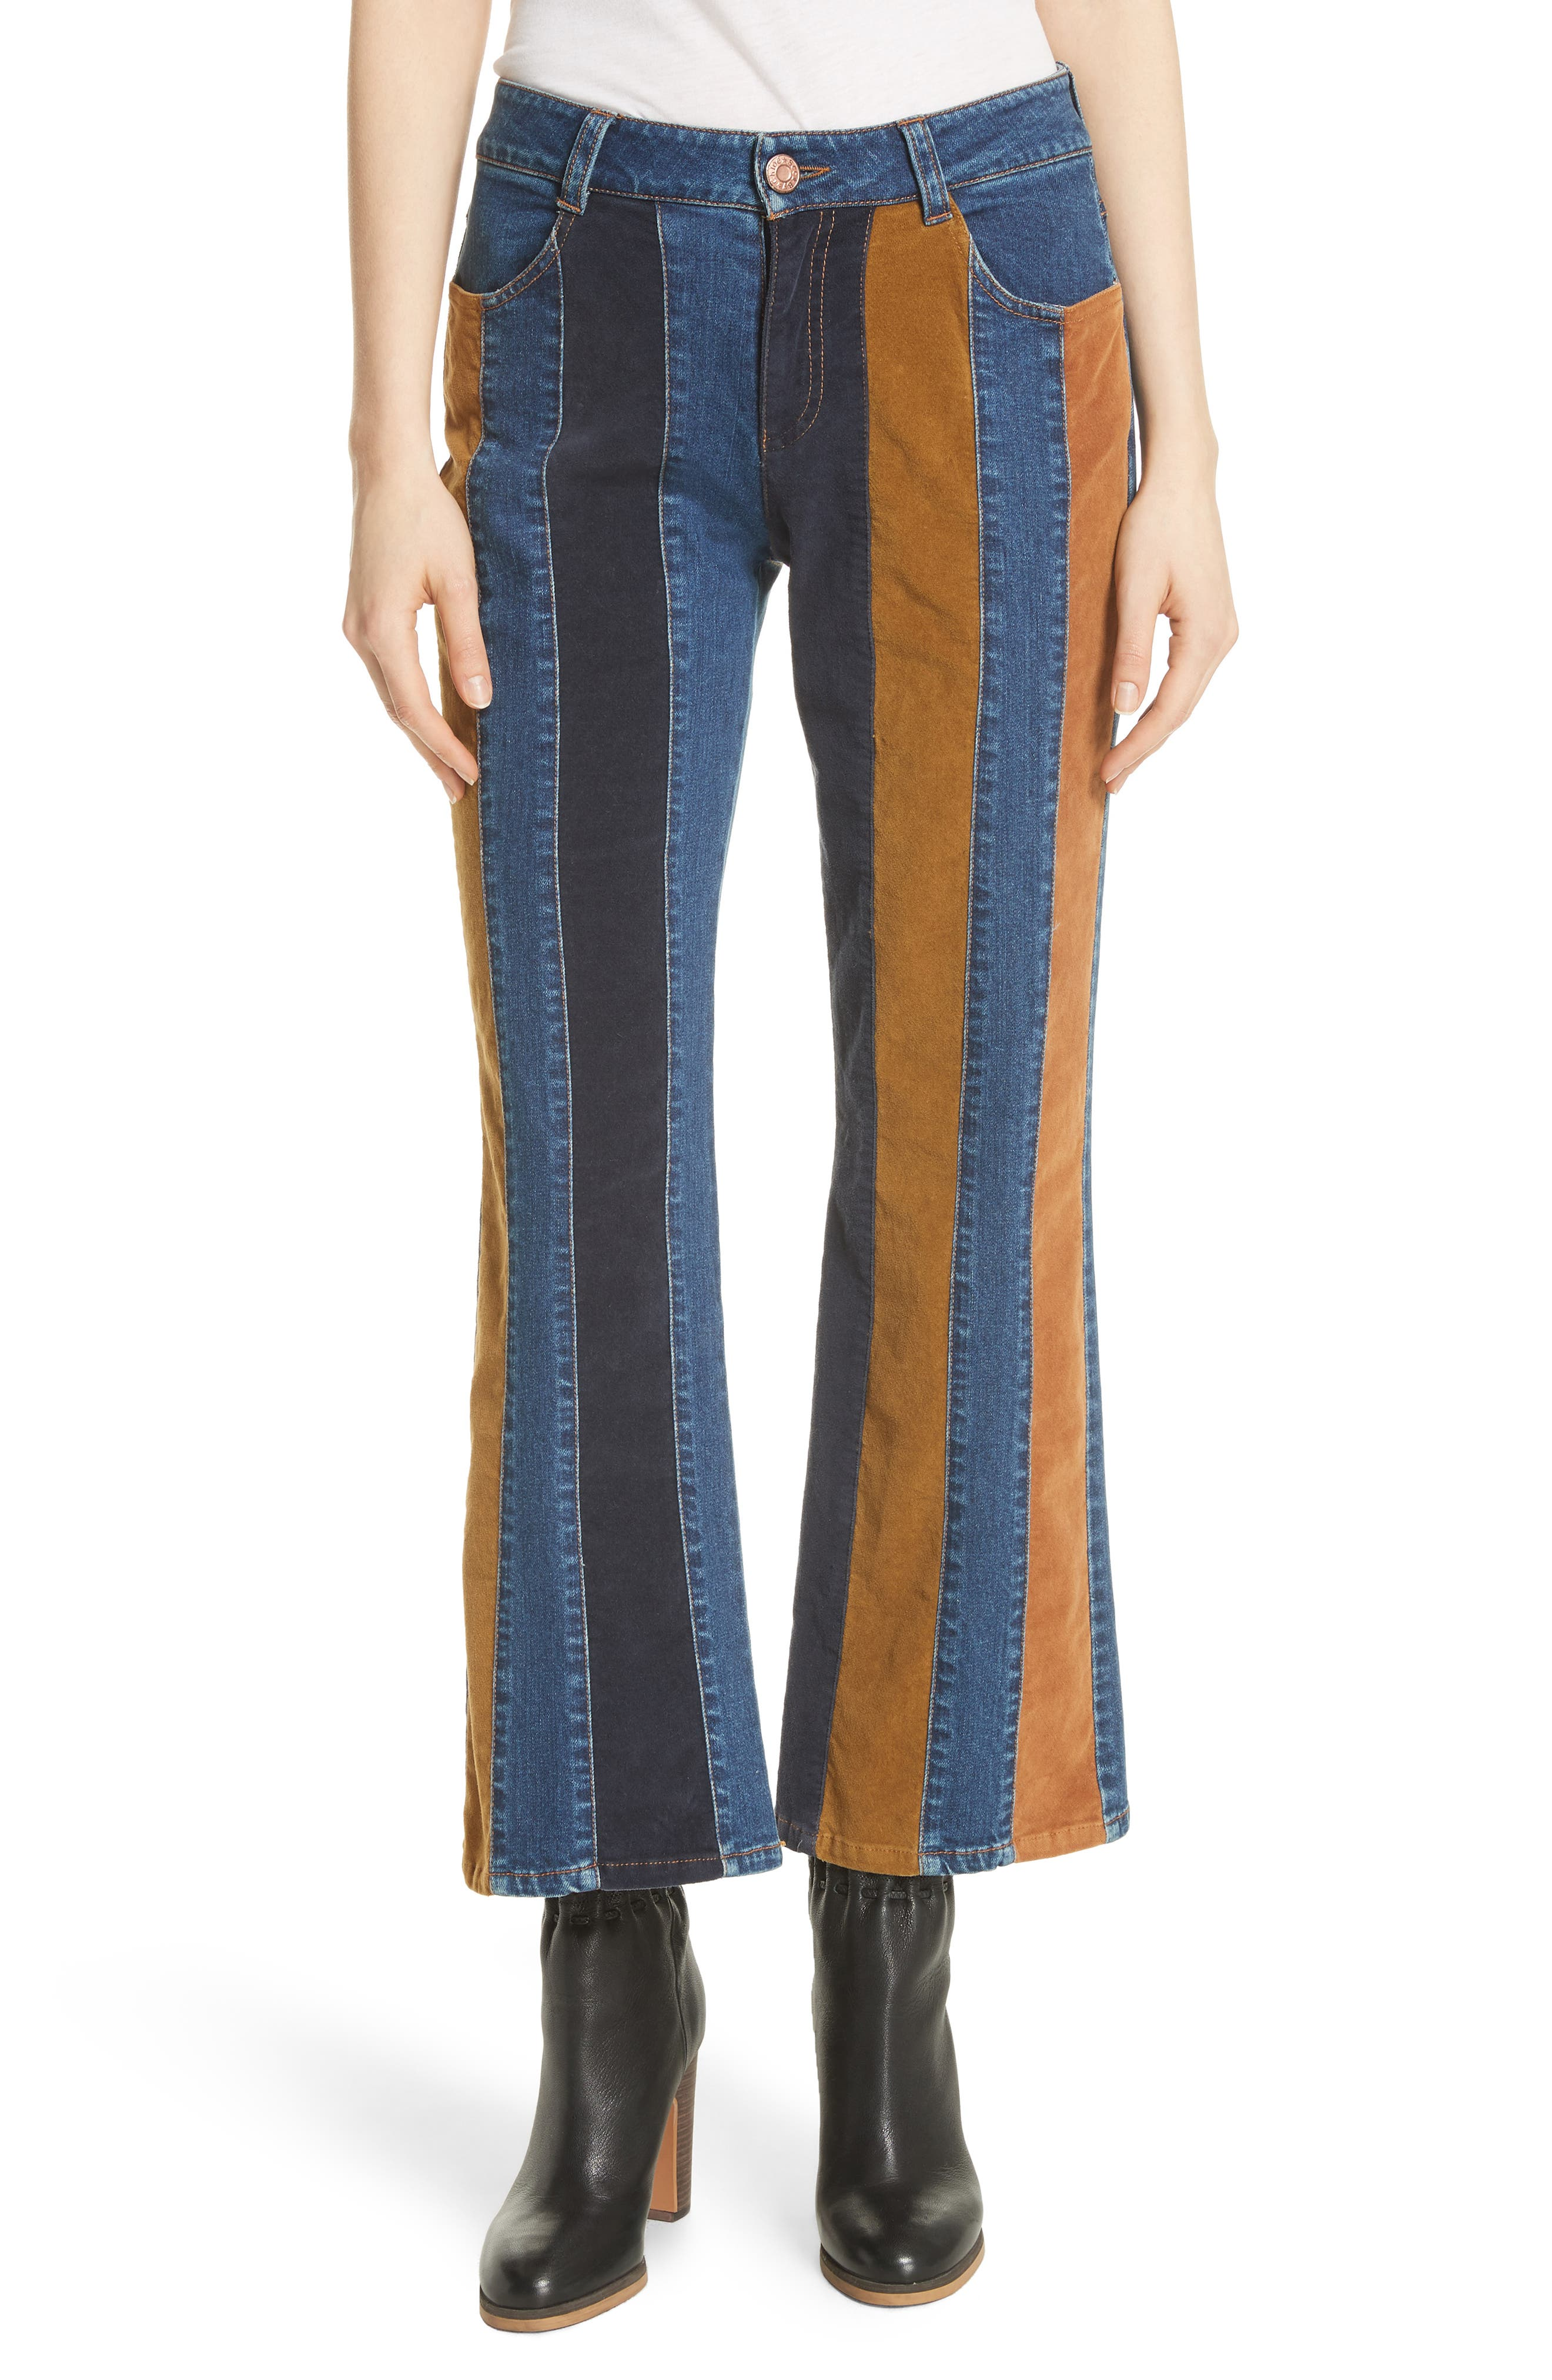 Vintage High Waisted Trousers, Sailor Pants, Jeans Womens See By Chloe Paneled Crop Flare Jeans $155.98 AT vintagedancer.com